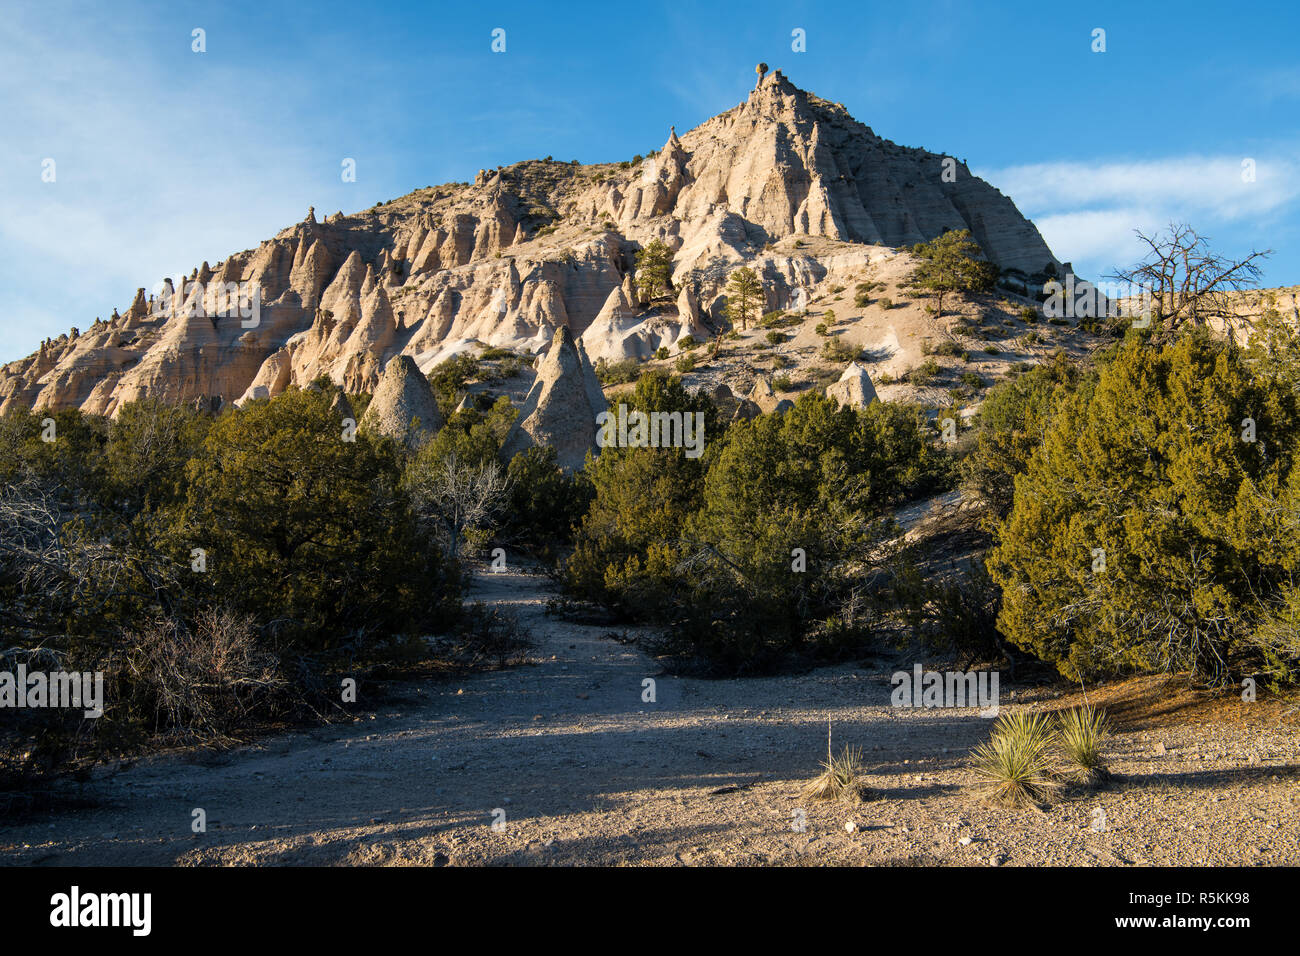 A high, steep desert peak with unusual towers and rock formations in the light of sunset at Kasha-Katuwe Tent Rocks National Monument, New Mexico - Stock Image